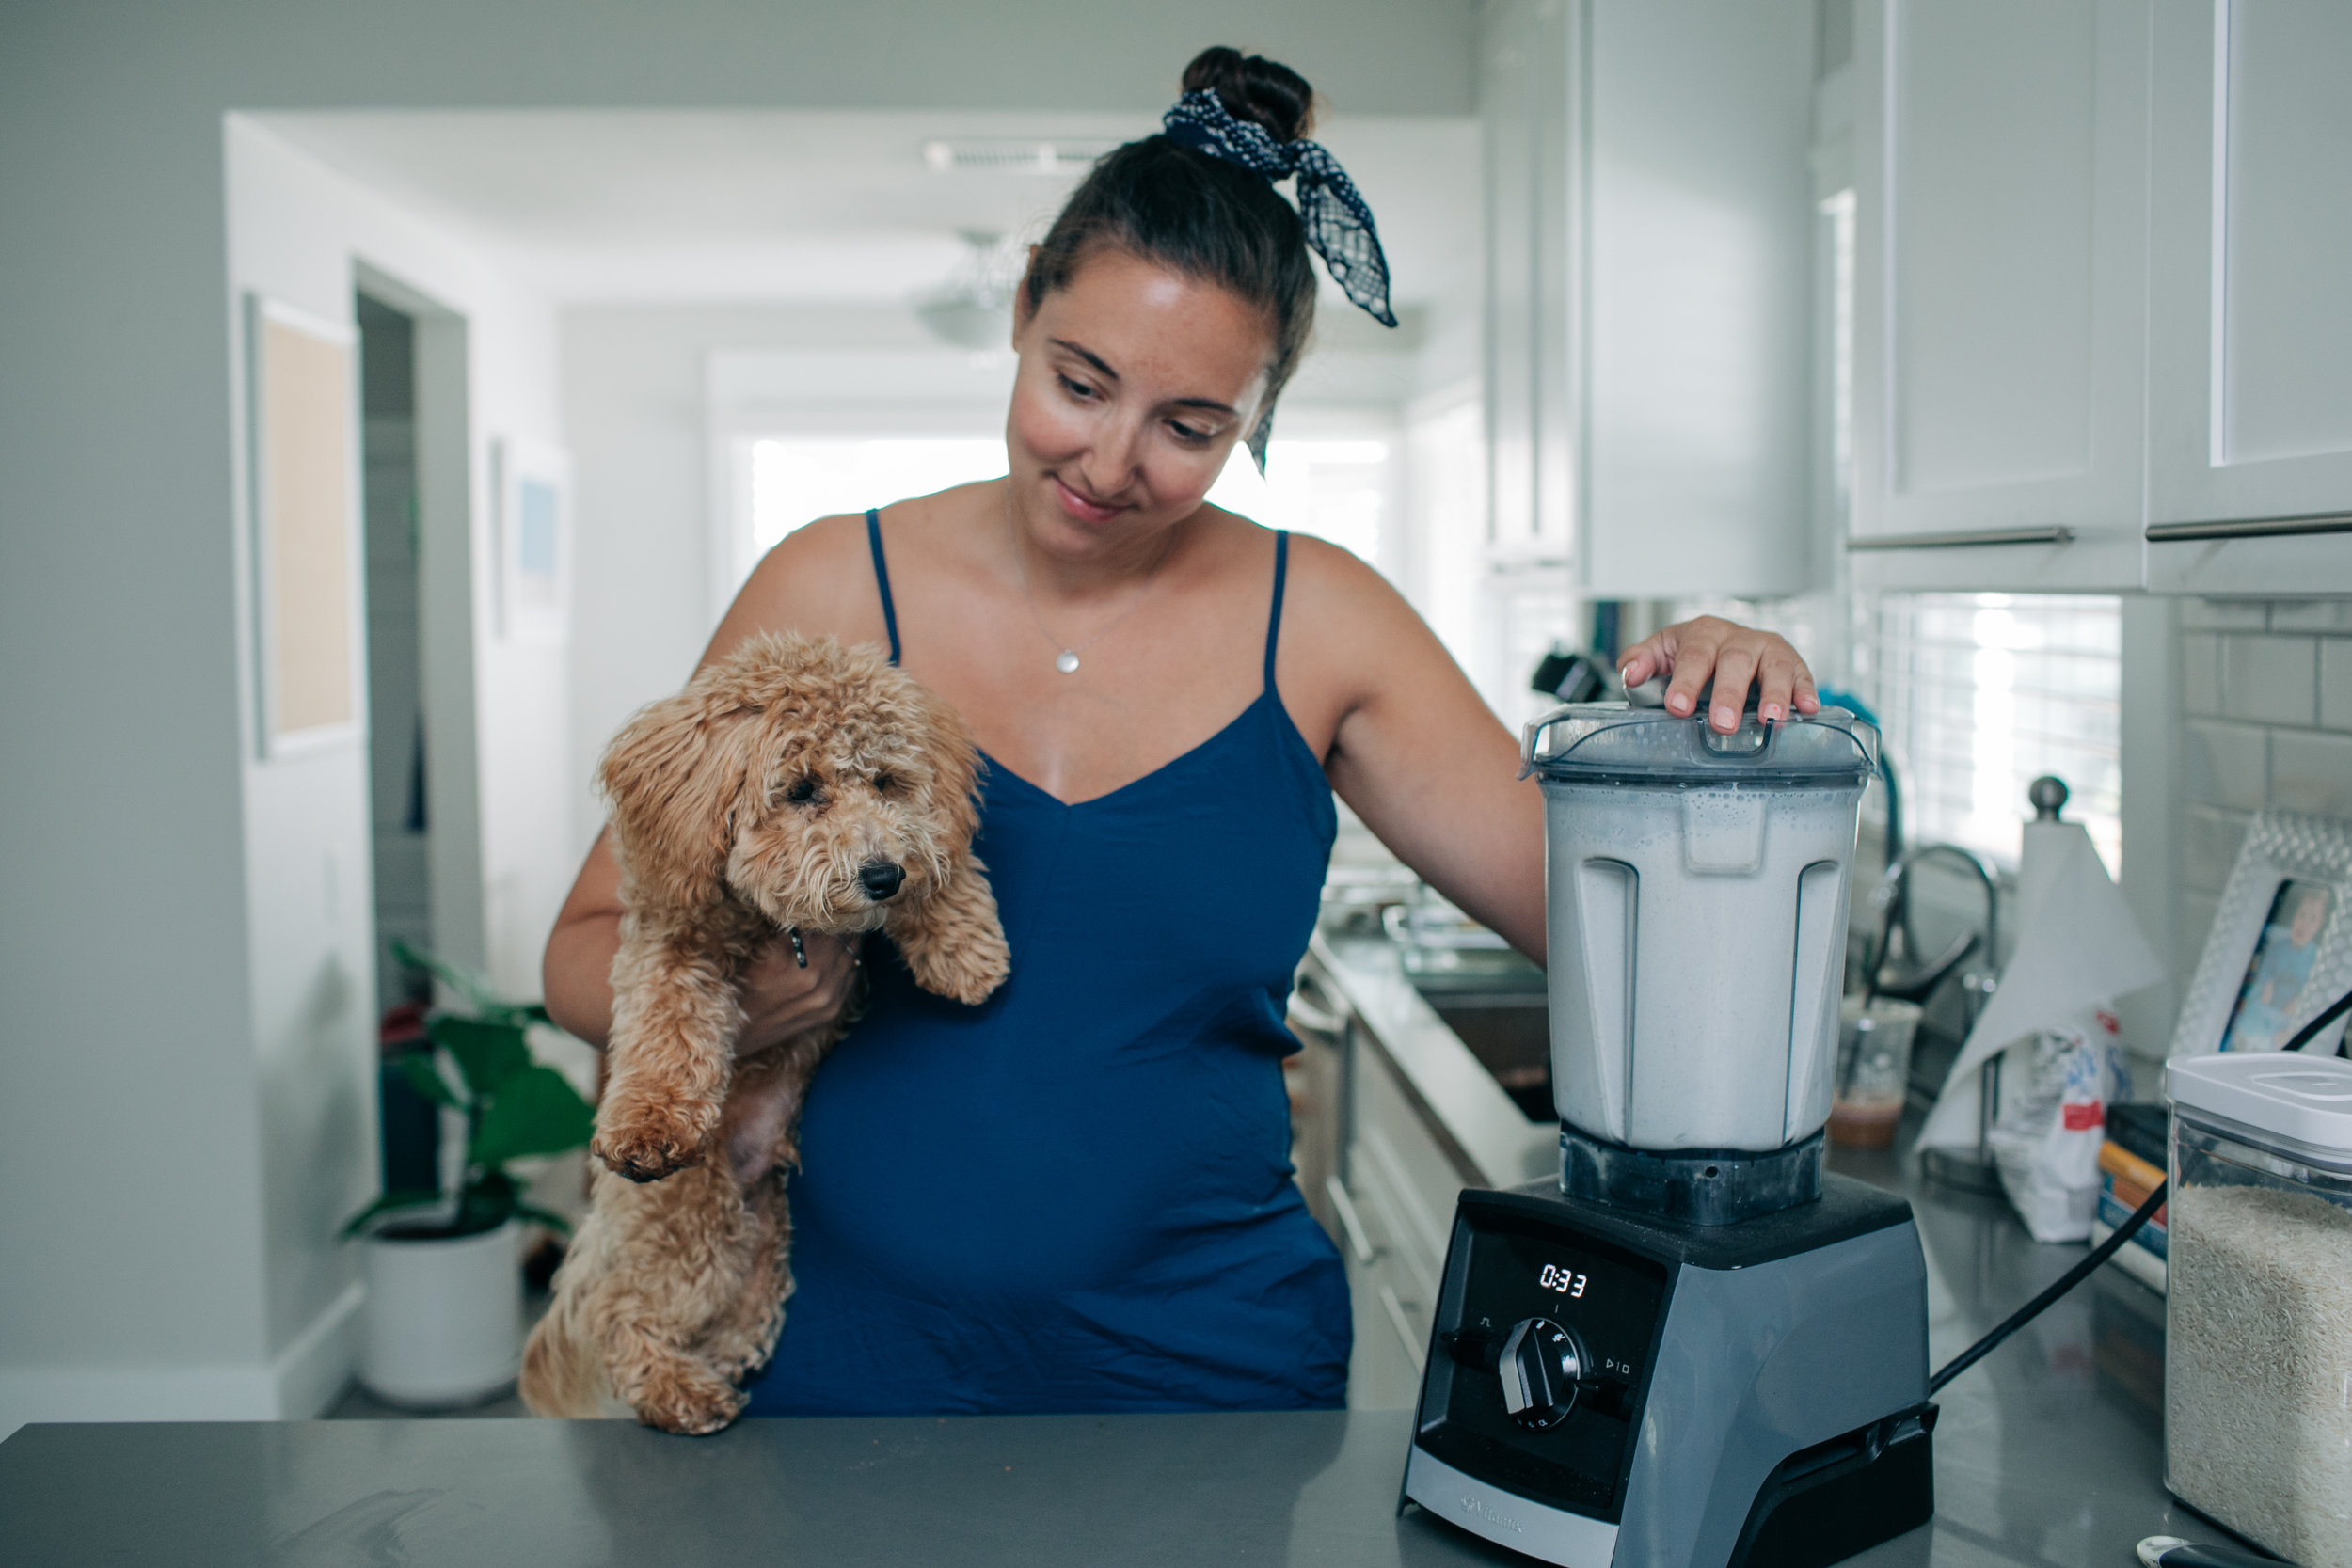 Marley is here because he cries when the blender is on. So we hold him when using the blender now so he doesn't get too upset. haha!